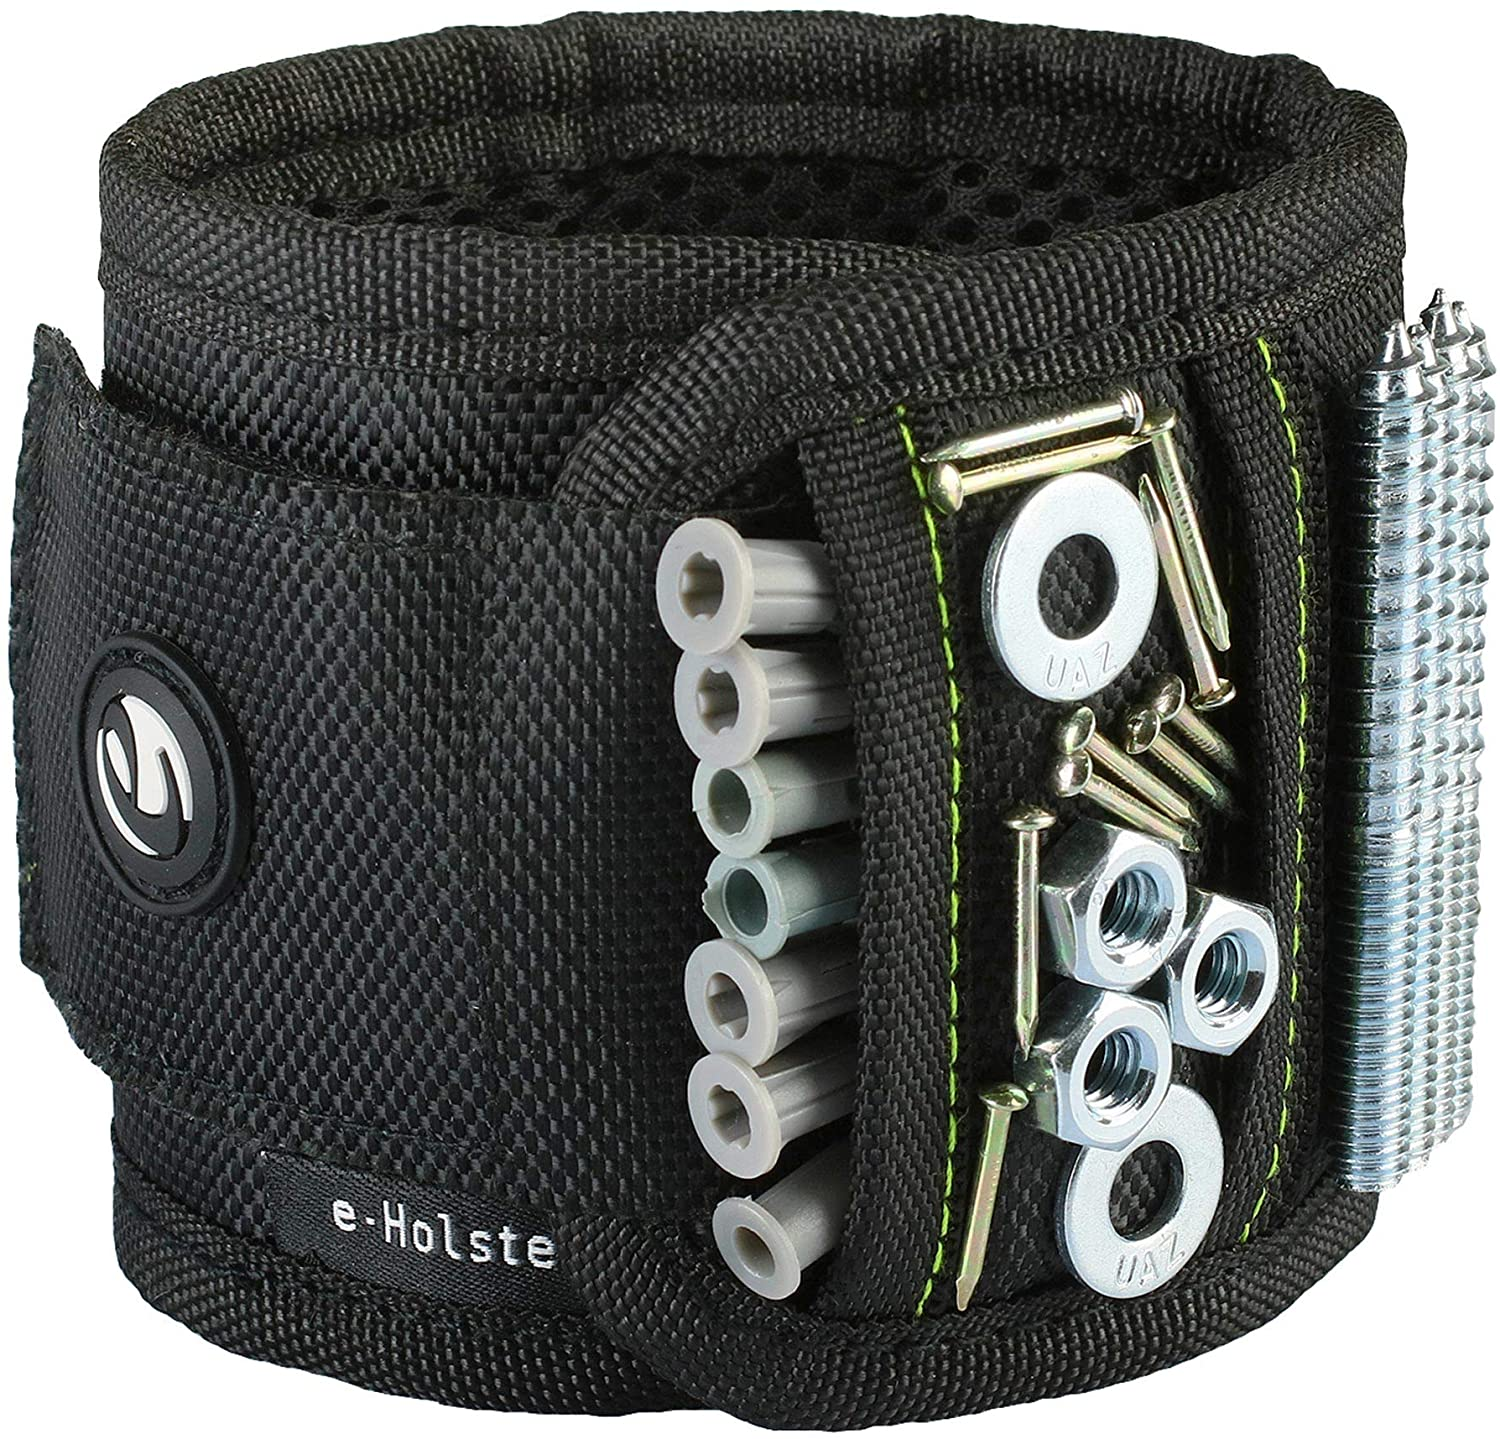 e-Holster Magnetic Wristband for Holding Screws, Nails, Drill Bits & Tools   Arm or Wrist Cuff Holder Magnet   Unique Gift for Husband, Father, Mechanic, Construction Worker, Handyman, DIY